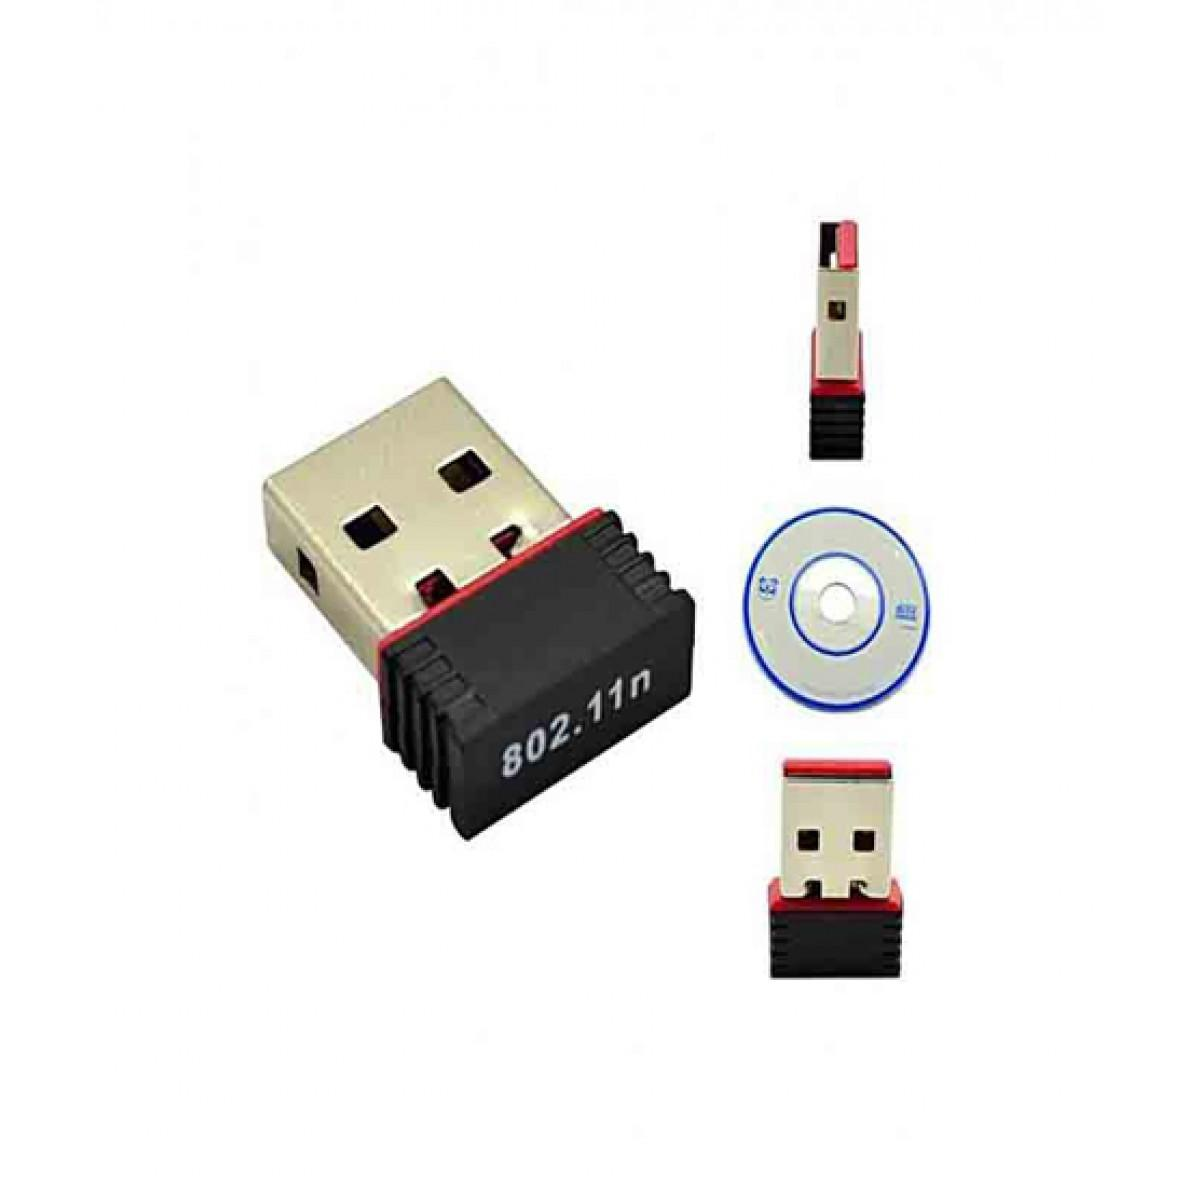 Networking Tools Online In Pakistan Cat 6 Cable Wiring Diagram How To Make An Ethernet Network Alfa Wifi Usb Adapter Mini 150mbps